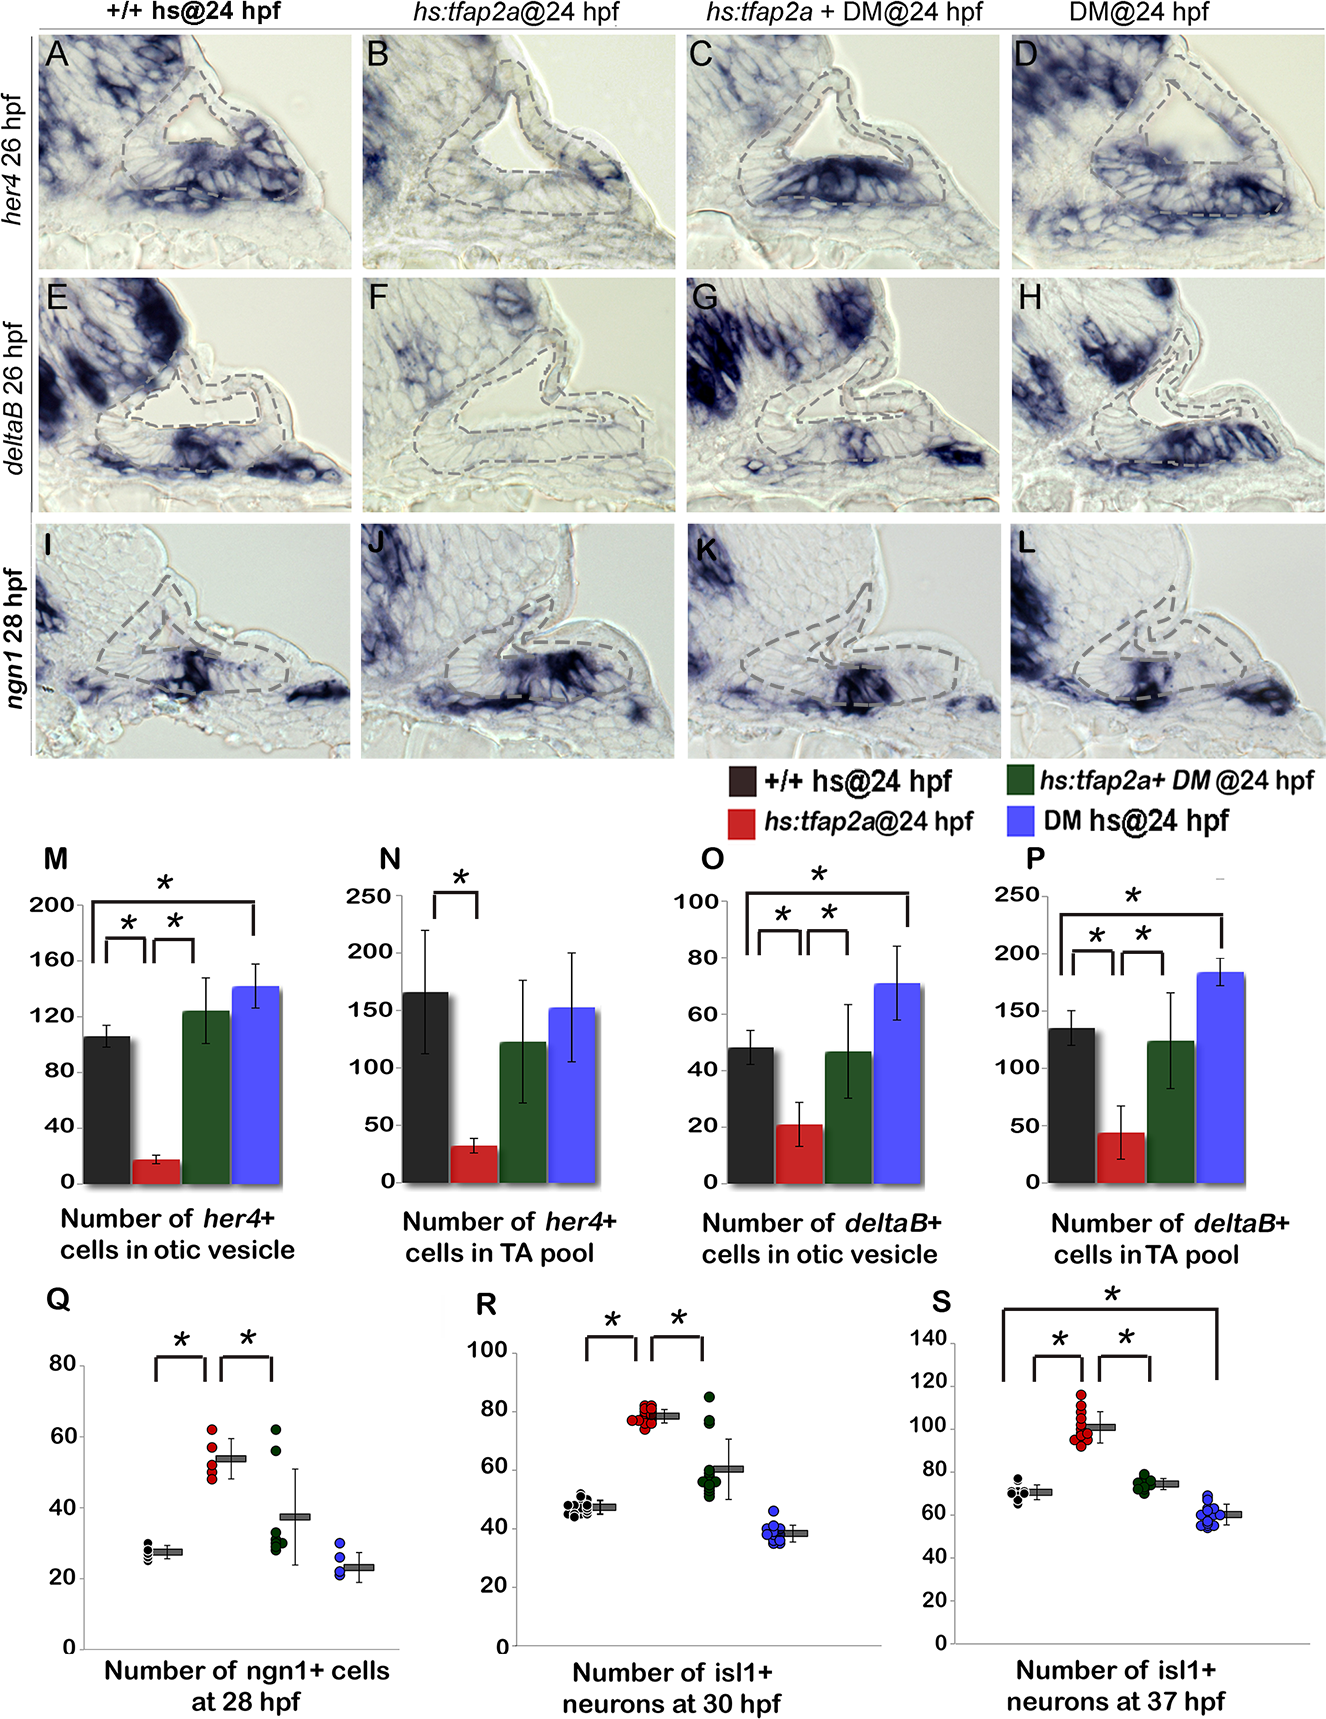 Bmp signaling mediates the effects of Tfap2a on SAG development.